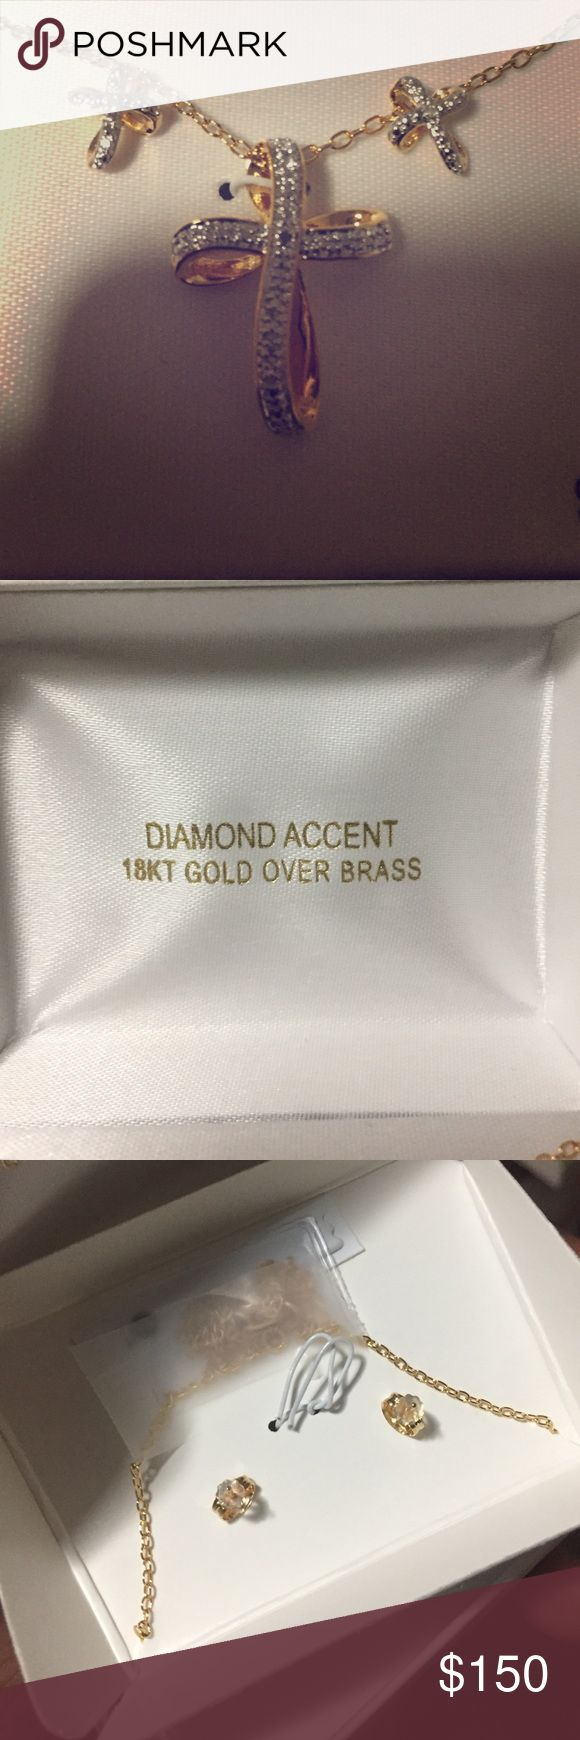 Gold Diamond Necklace & Earrings Set 💎 💯% Real Gold ! Very beautiful and a great gift 🎁 😍😍😍 BRAND NEW IN BOX *willing to accept reasonable offers* Jewelry Necklaces